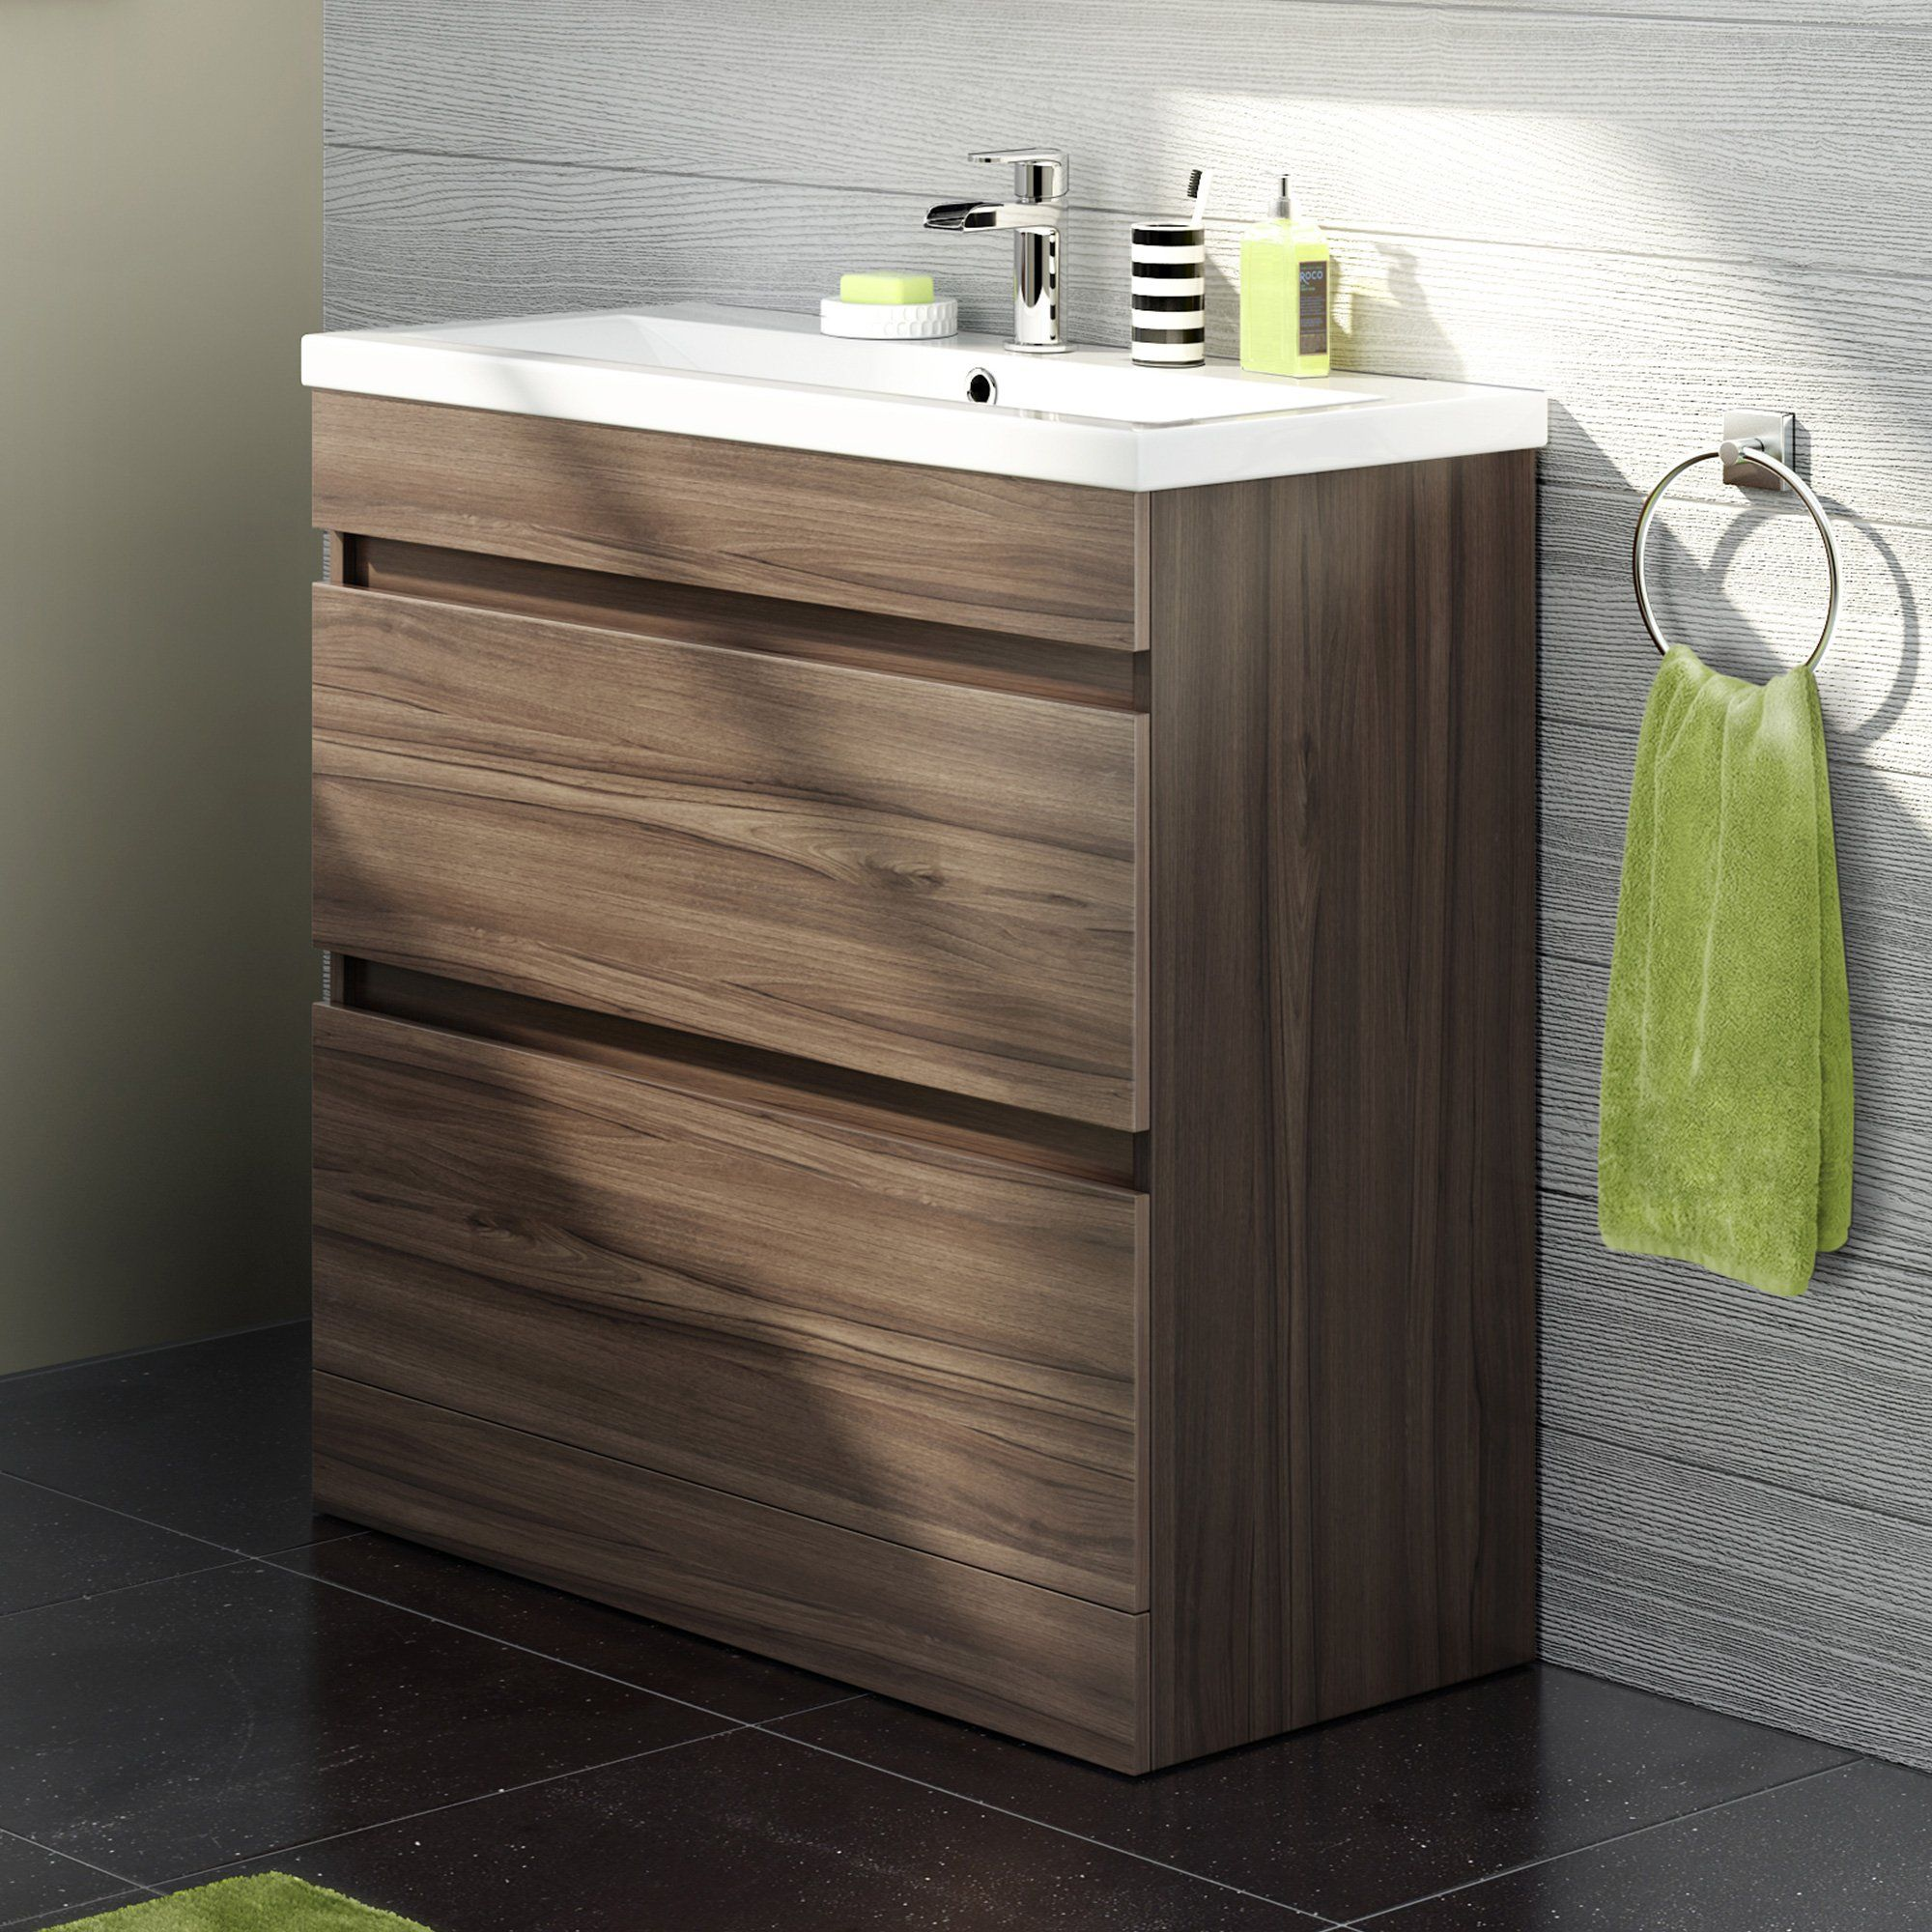 on mirror storage and wooden perfecting drawers above interior house pe appealing the between cabinet top with sink your counter black bathroom white wall vanity having completed oval